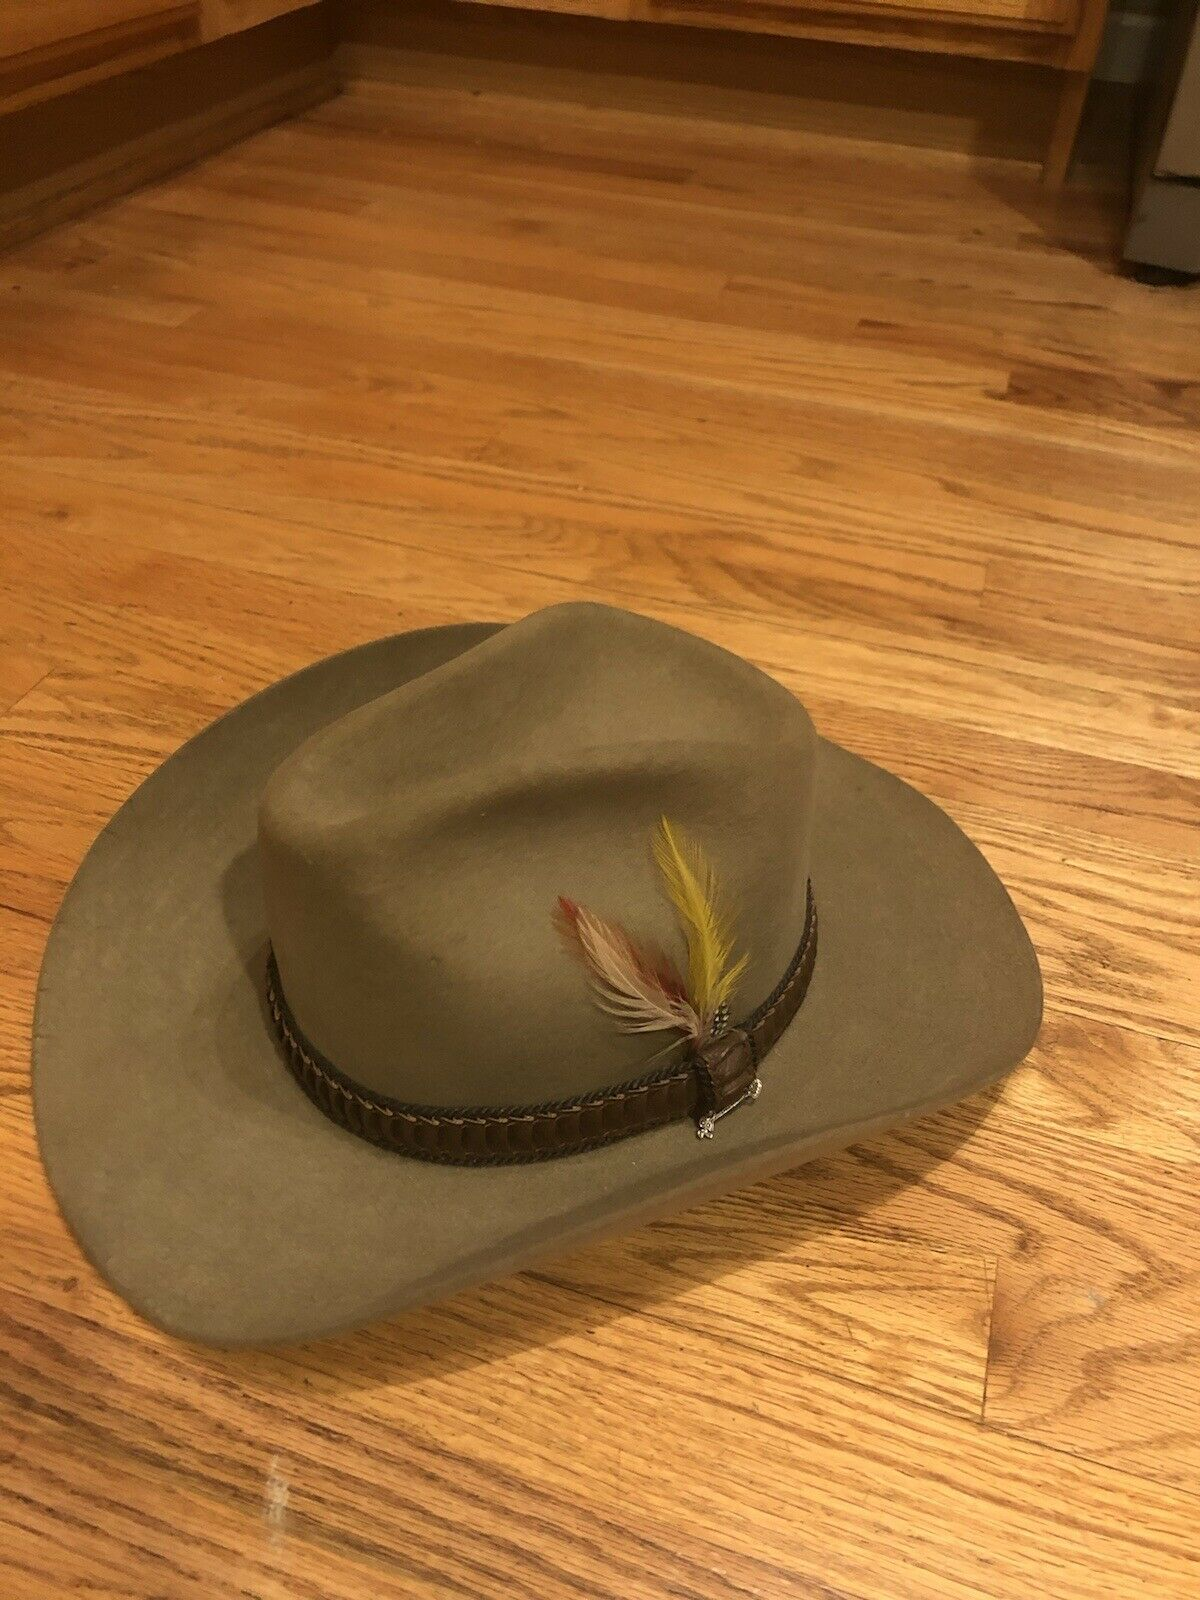 ** Vintage Stetson cowboy hat with box - 8029 Stampede **